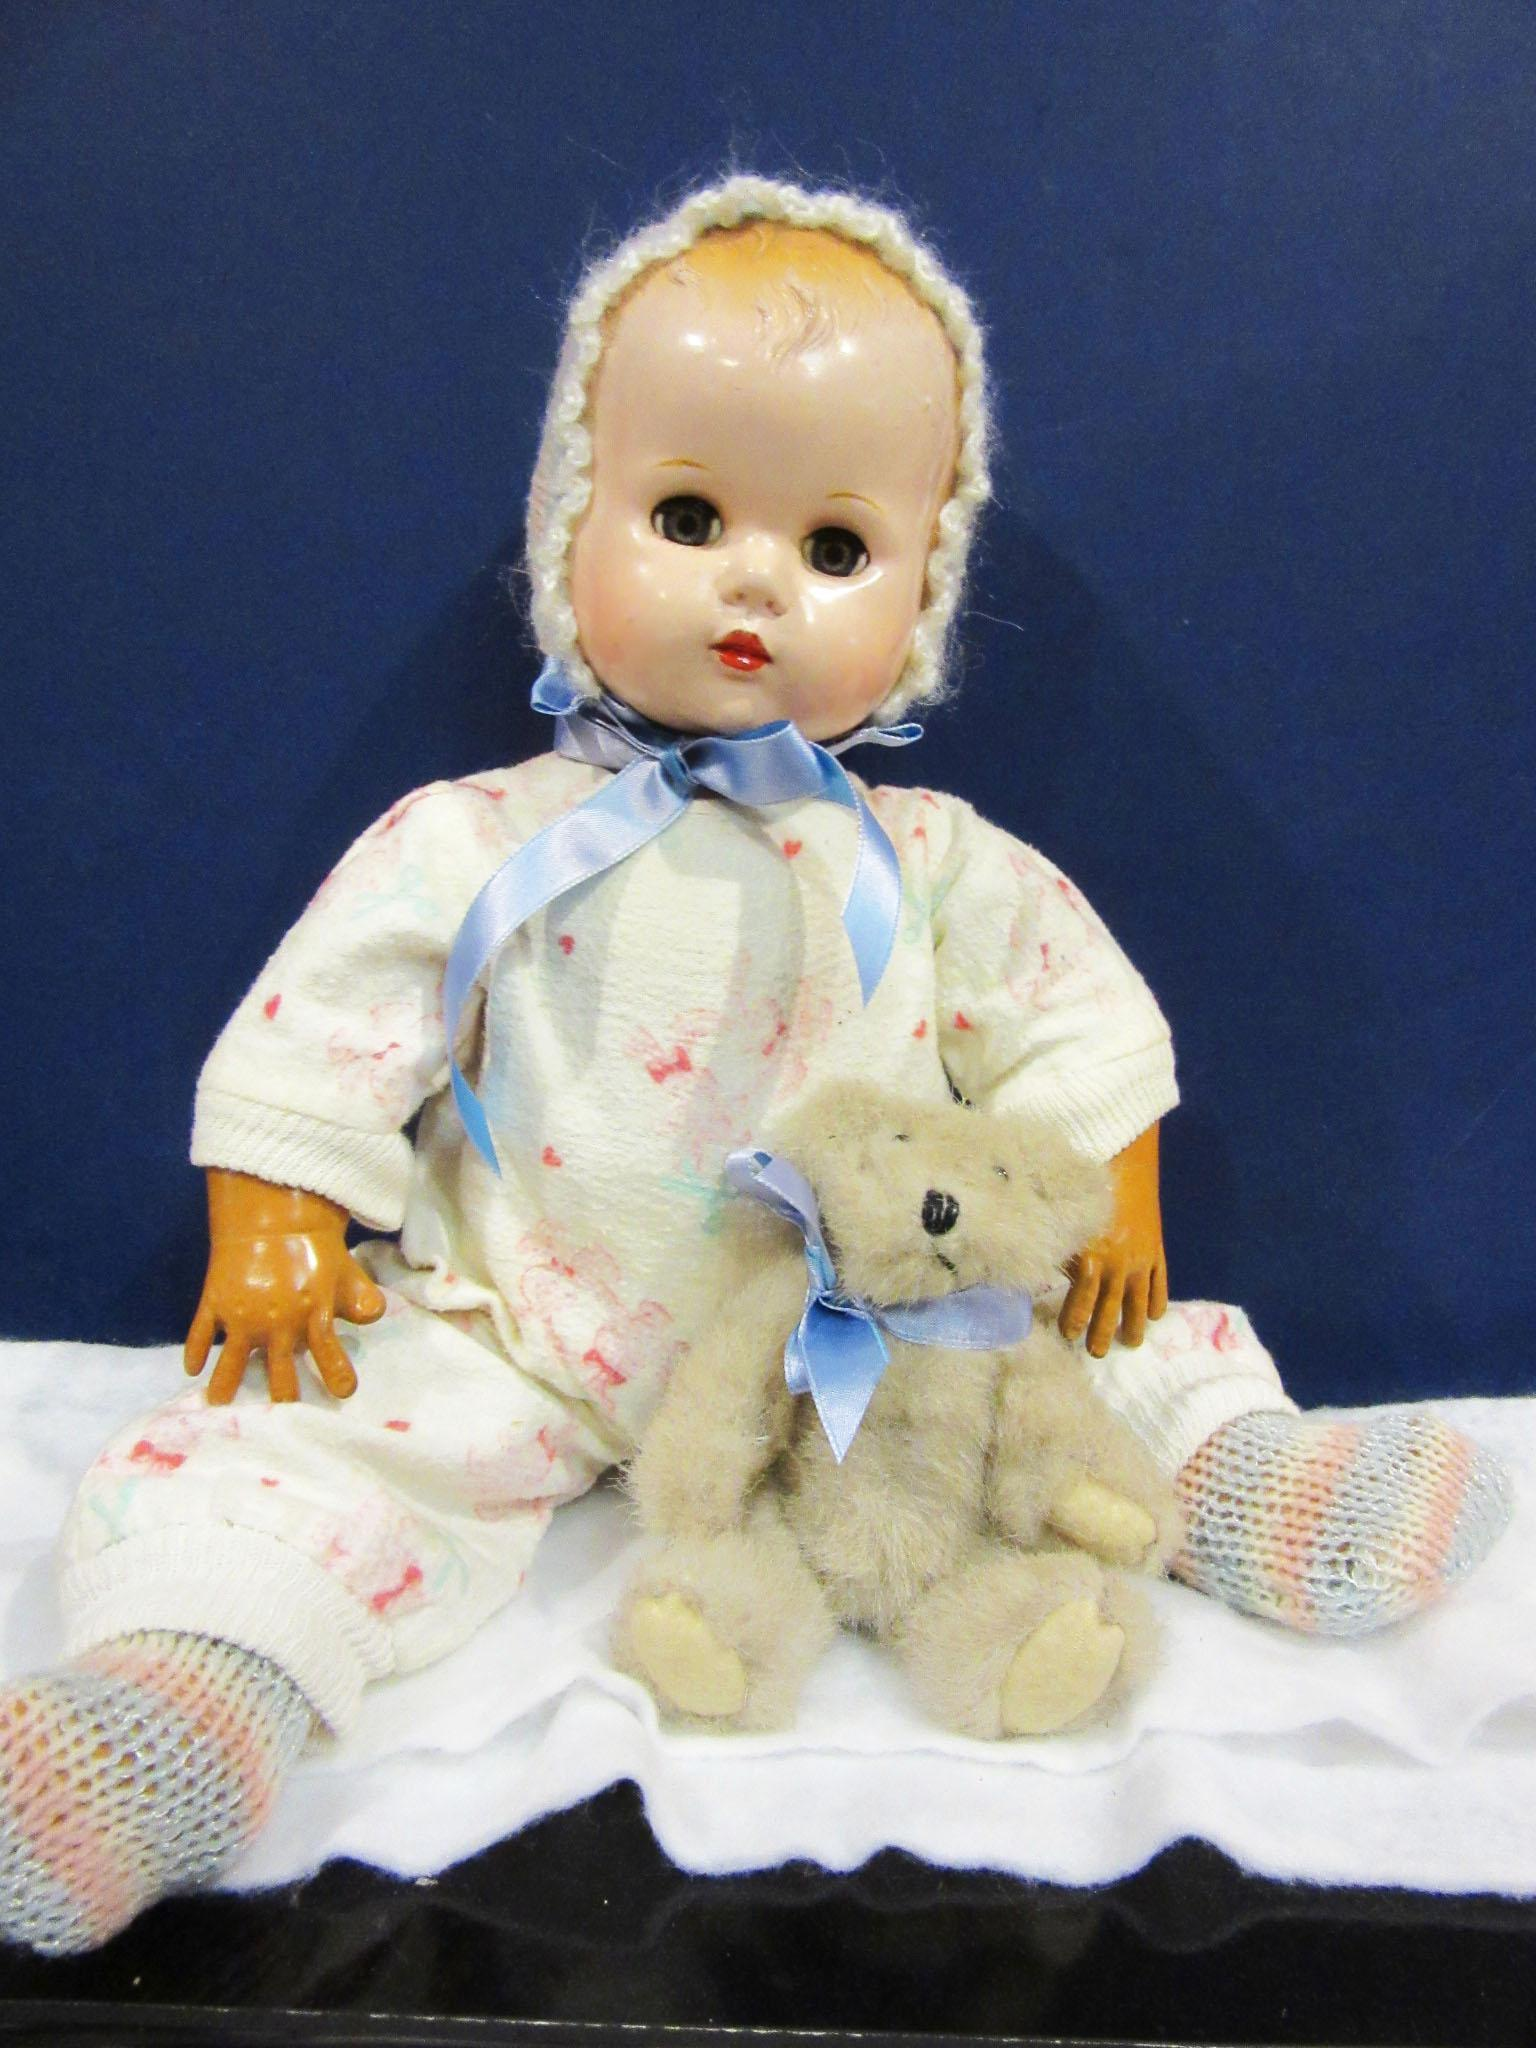 Vintage Baby with Dy Dee flannel pajamas